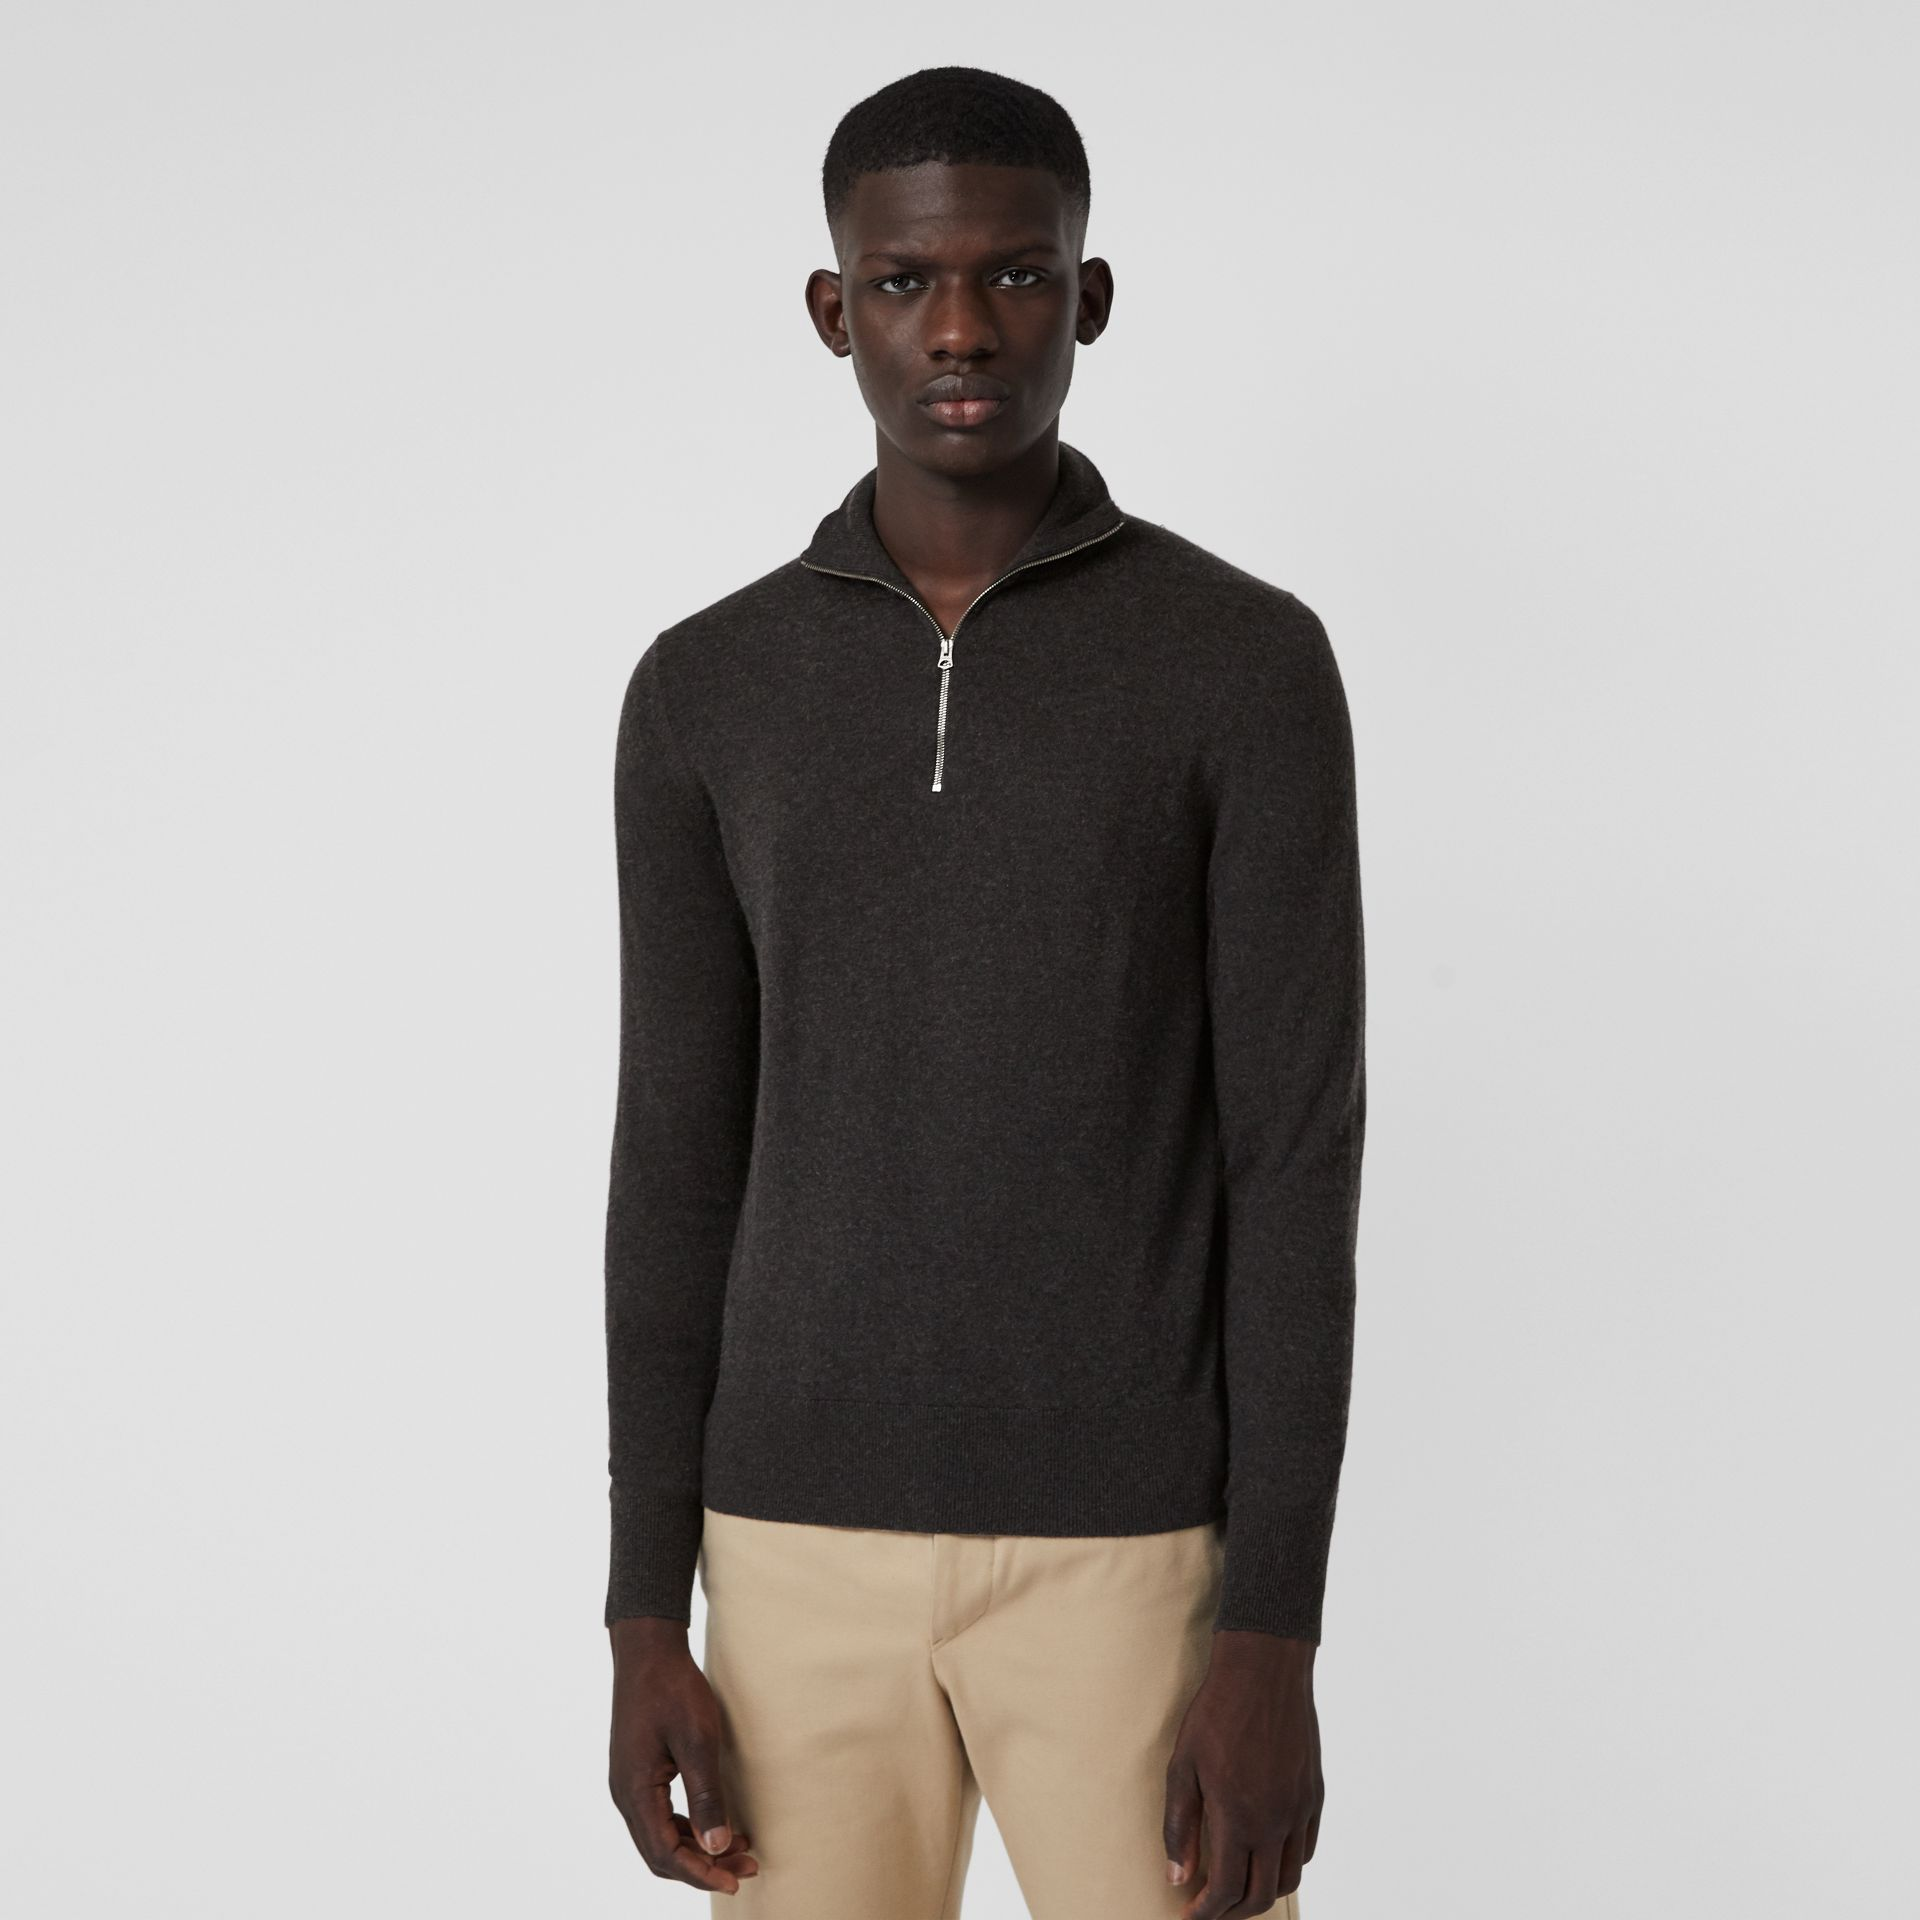 Zip-neck Cashmere Cotton Sweater in Charcoal - Men | Burberry Canada - gallery image 4